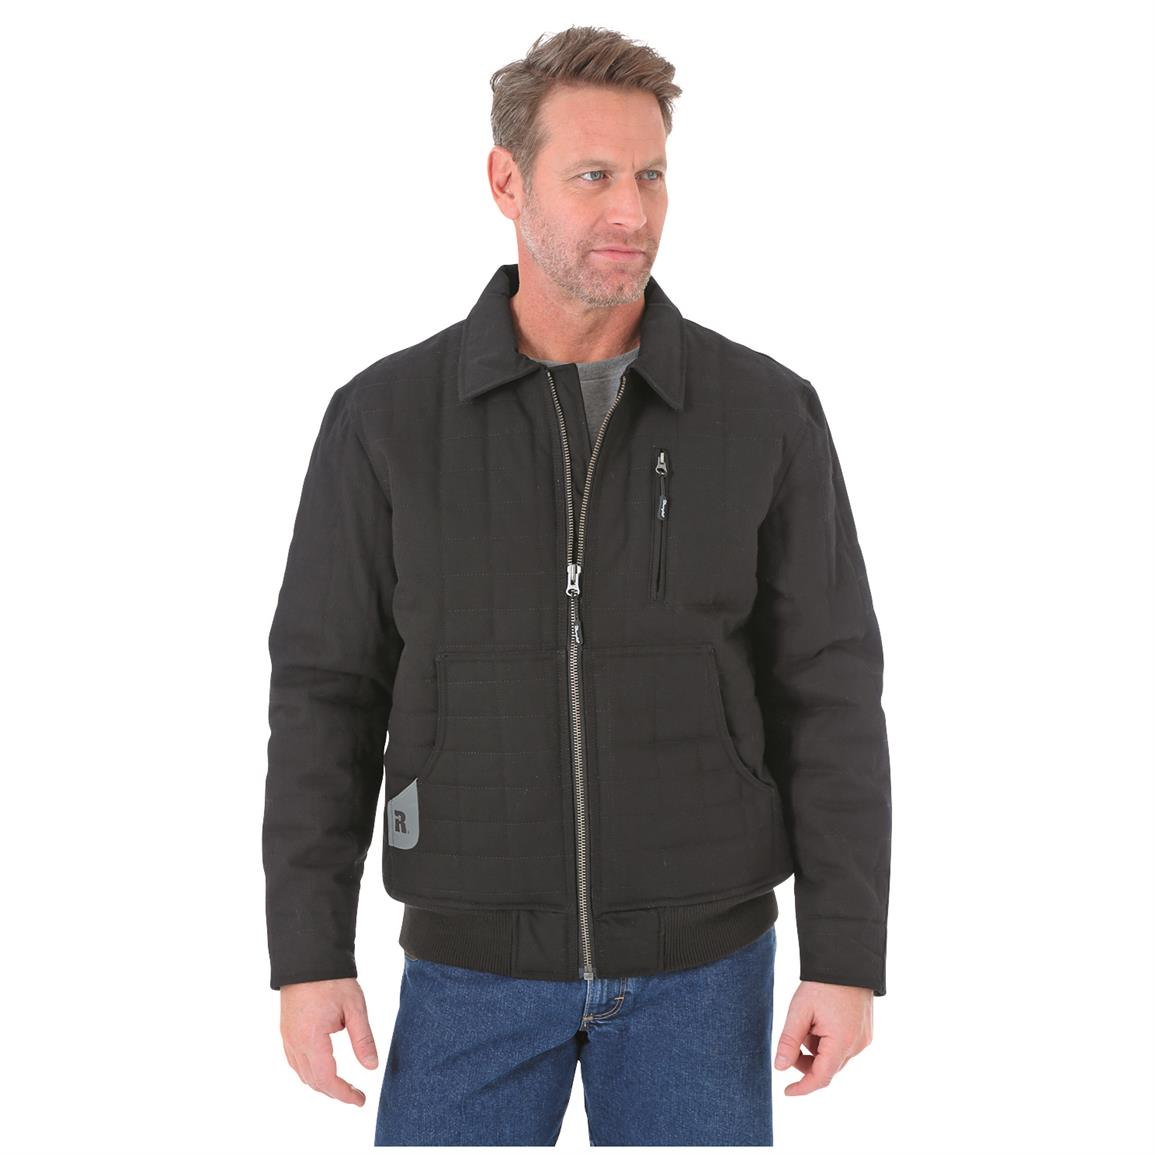 Wrangler RIGGS Workwear Men's Tradesman Jacket, Black